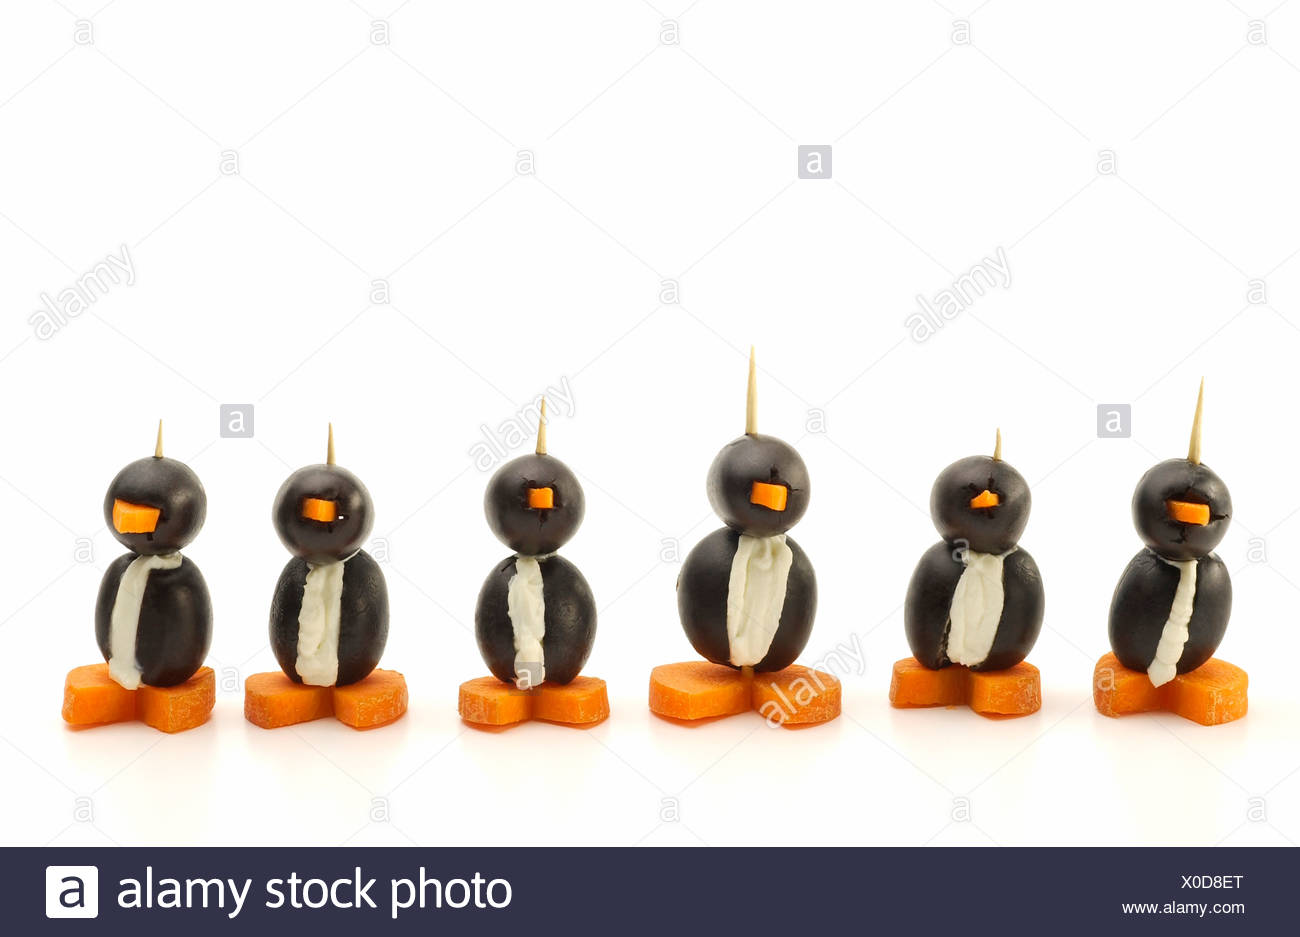 Penguins made of olives, cream cheese and carrots; Appetizers - Stock Image